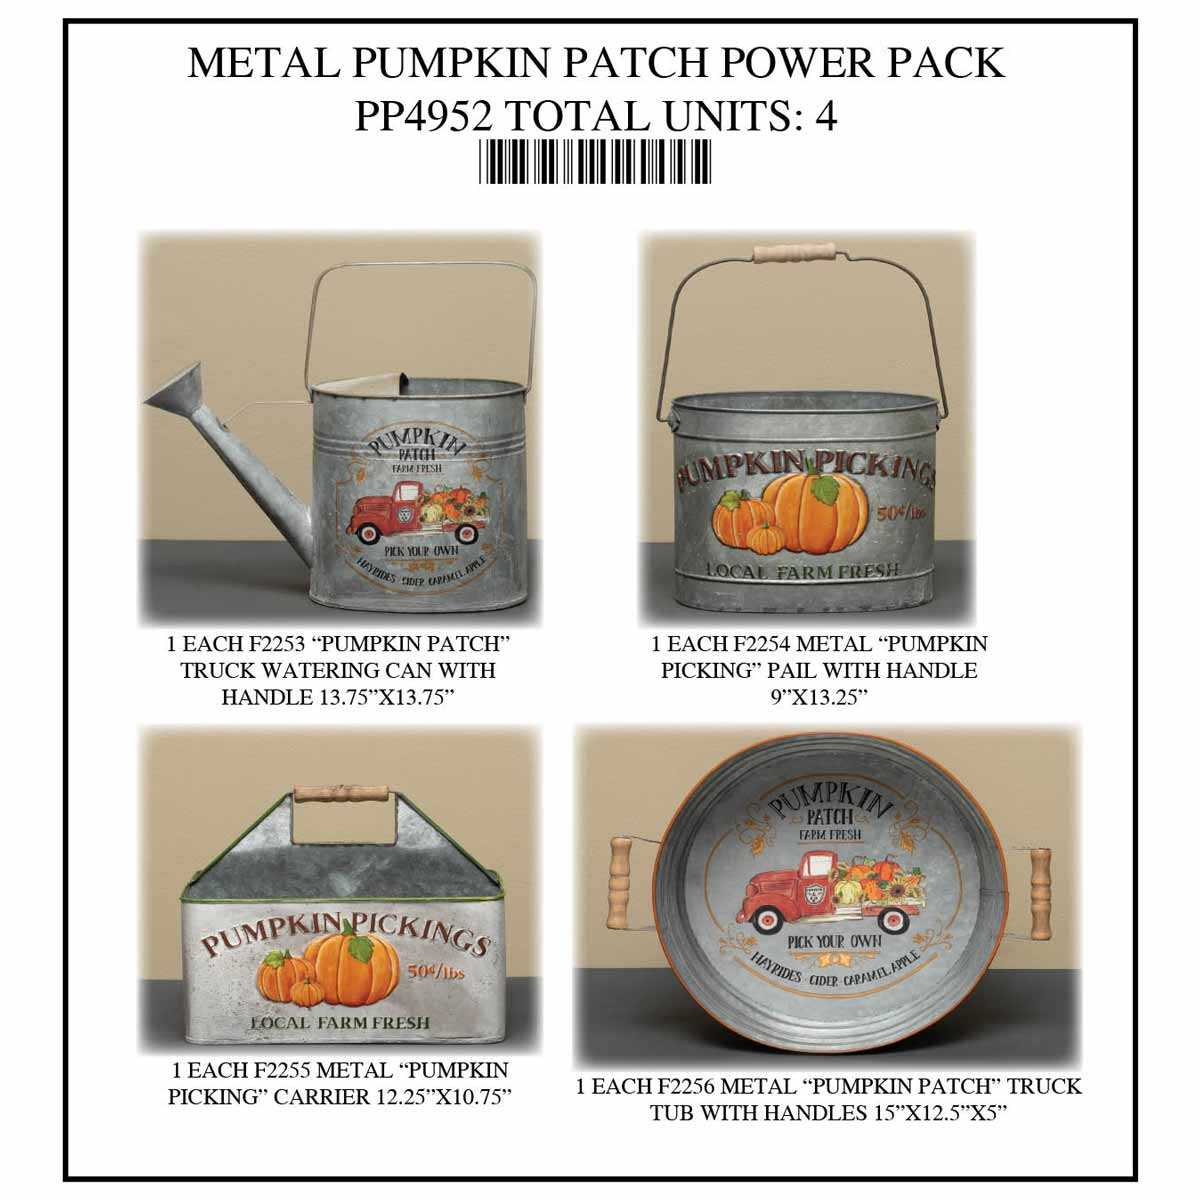 METAL PUMPKIN PATCH POWER PACK 4 UNITS PP4952